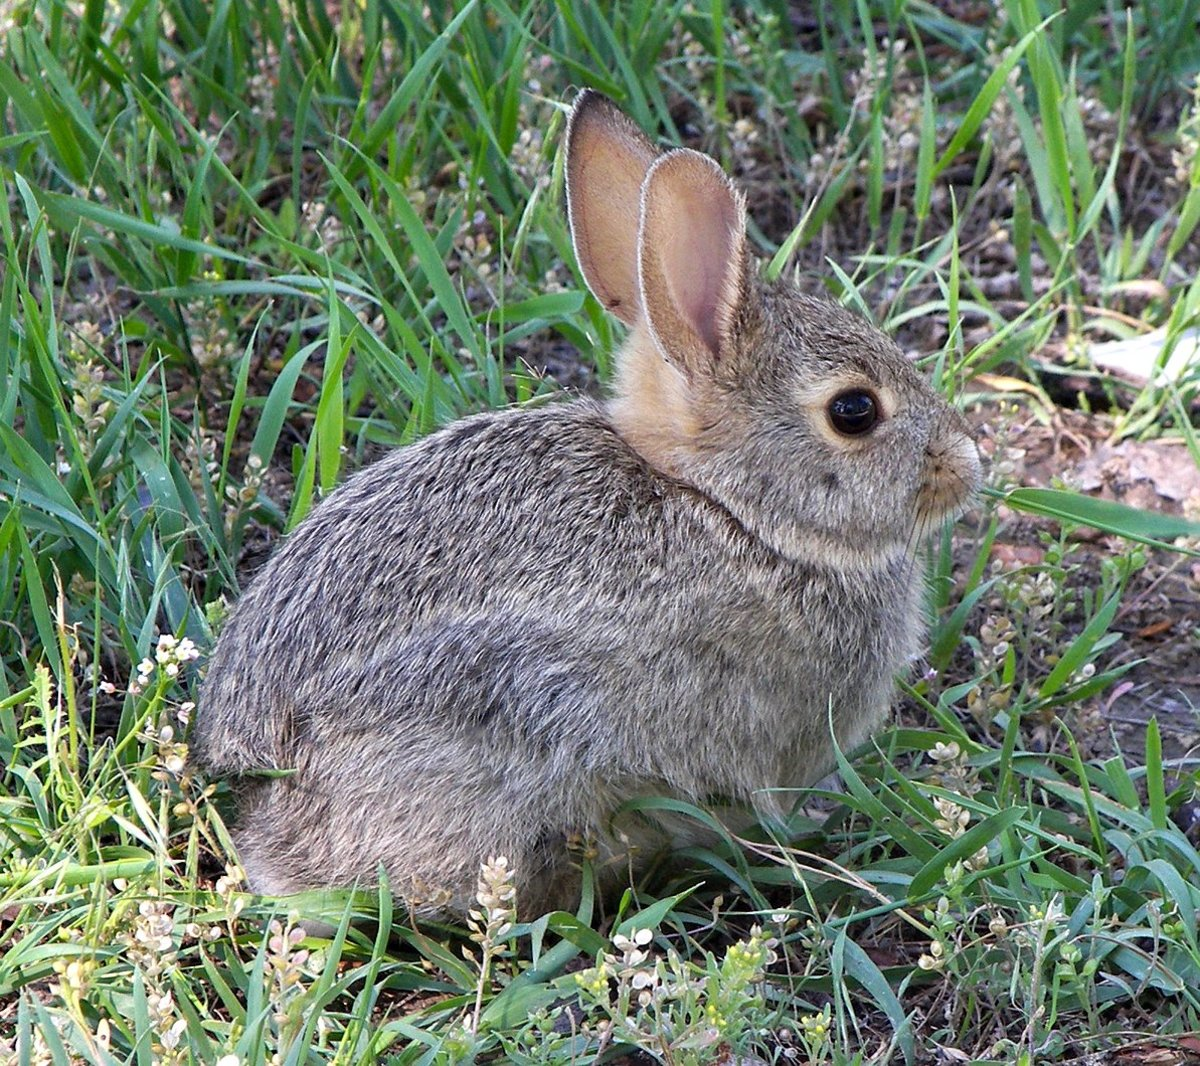 How to keep rabbits out of your garden dengarden - How to keep rabbits out of a garden ...